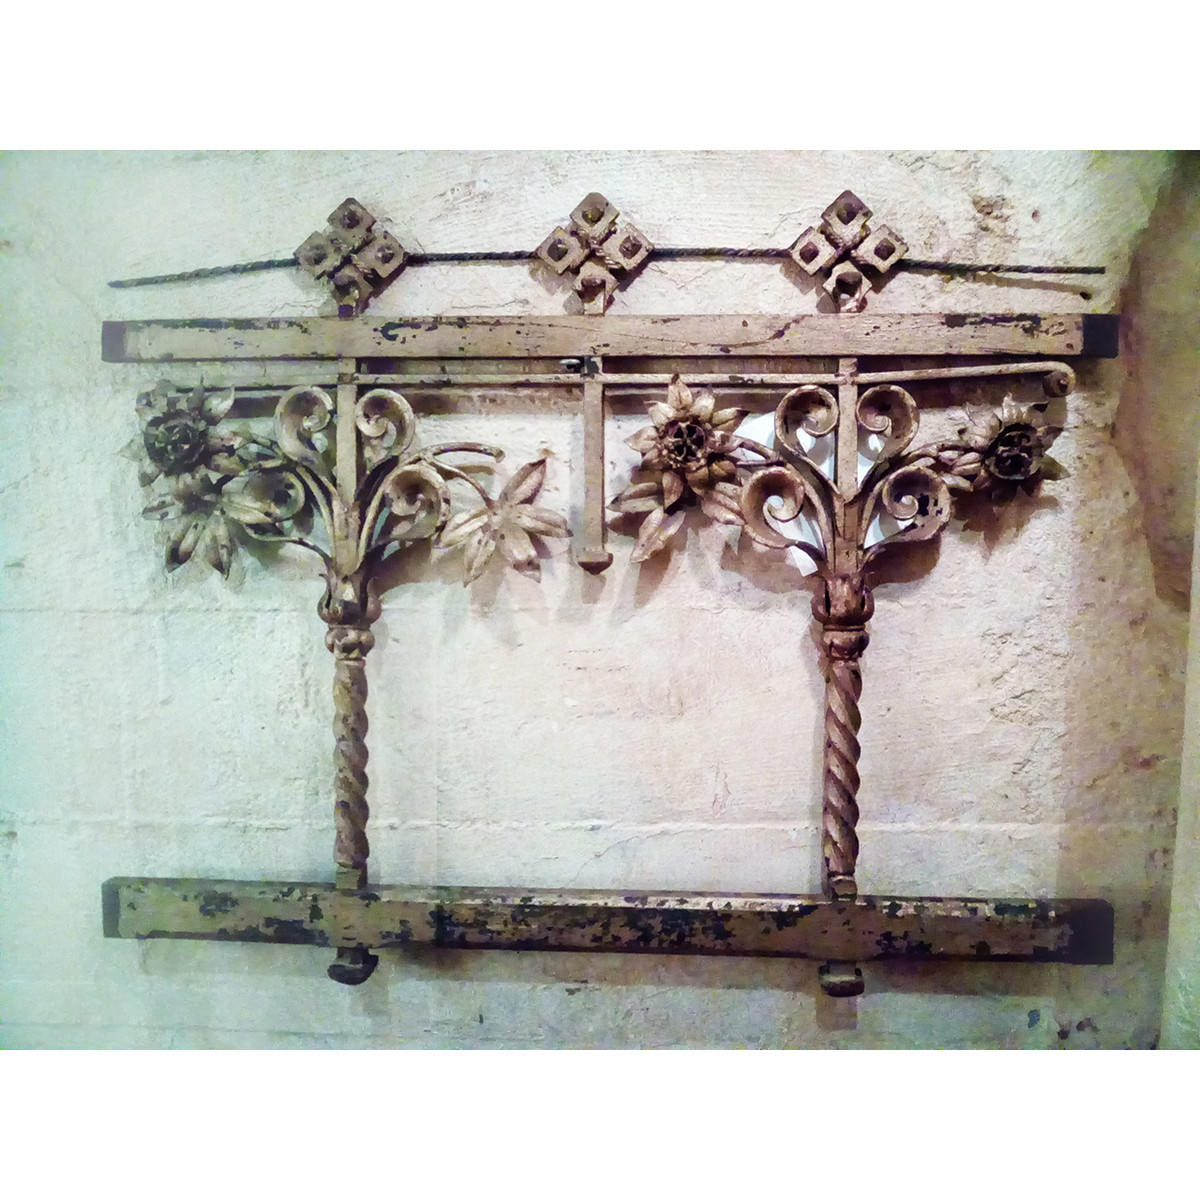 S19017B - Elaborate Wrought Iron Altar Rail Section